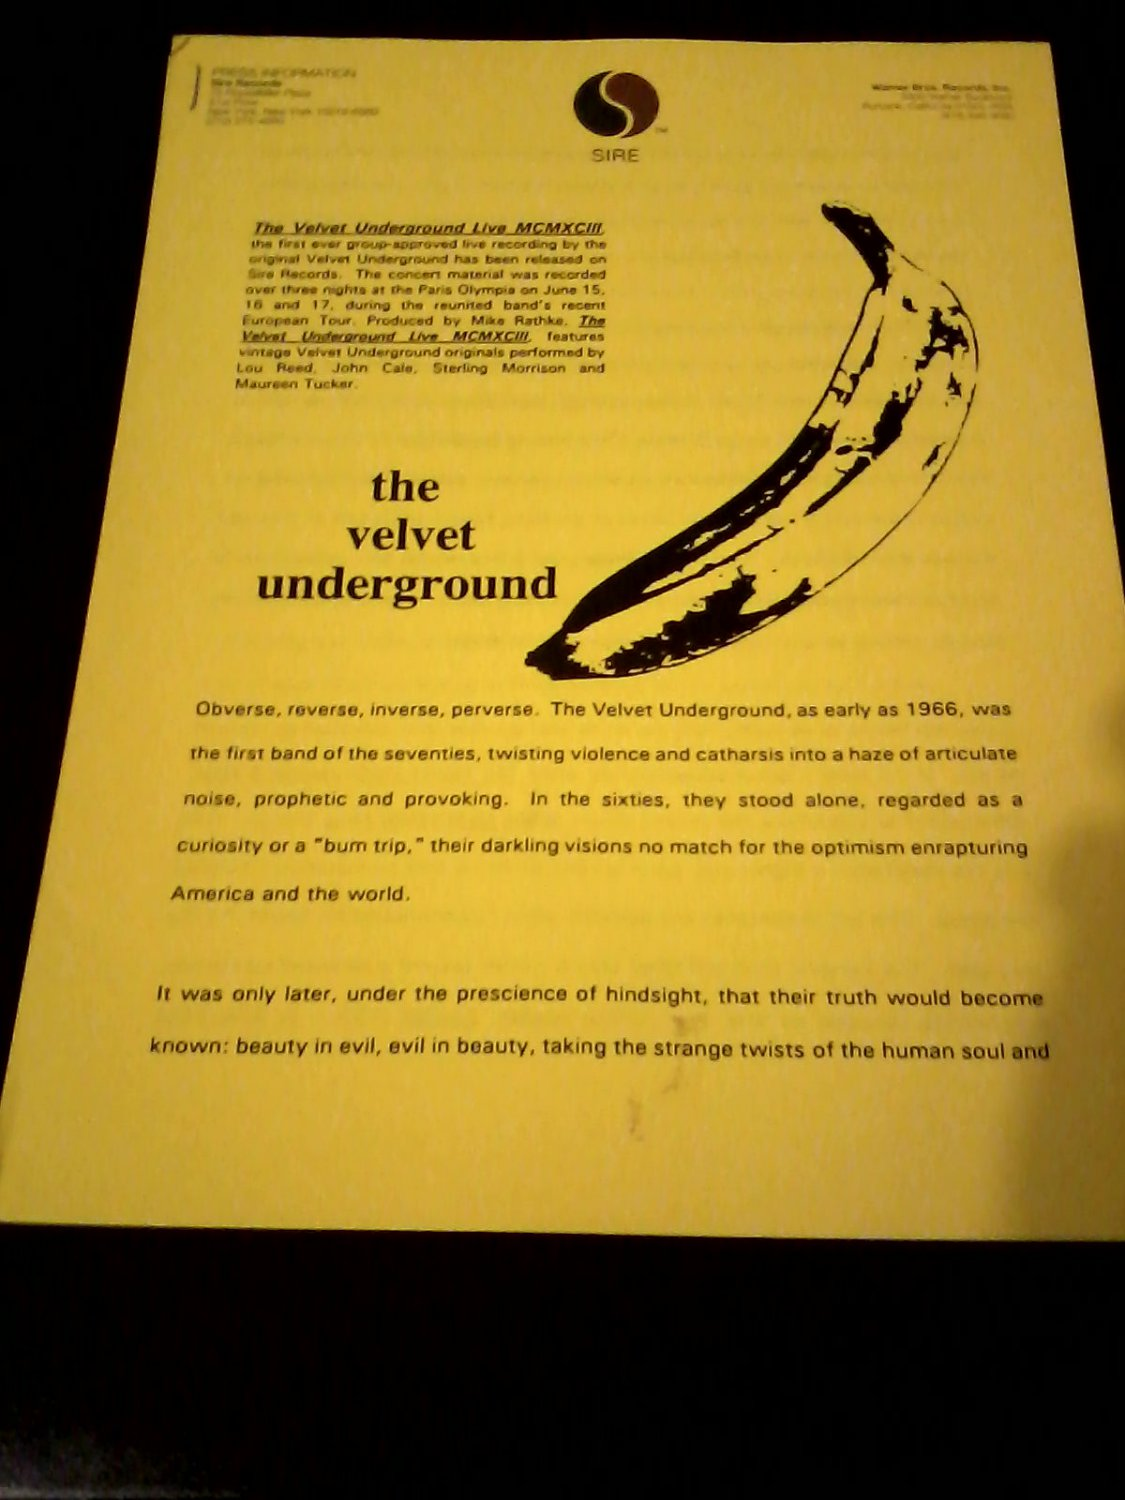 Lou Reed) Velvet Underground Live MCMX111 new op '94 Press Release